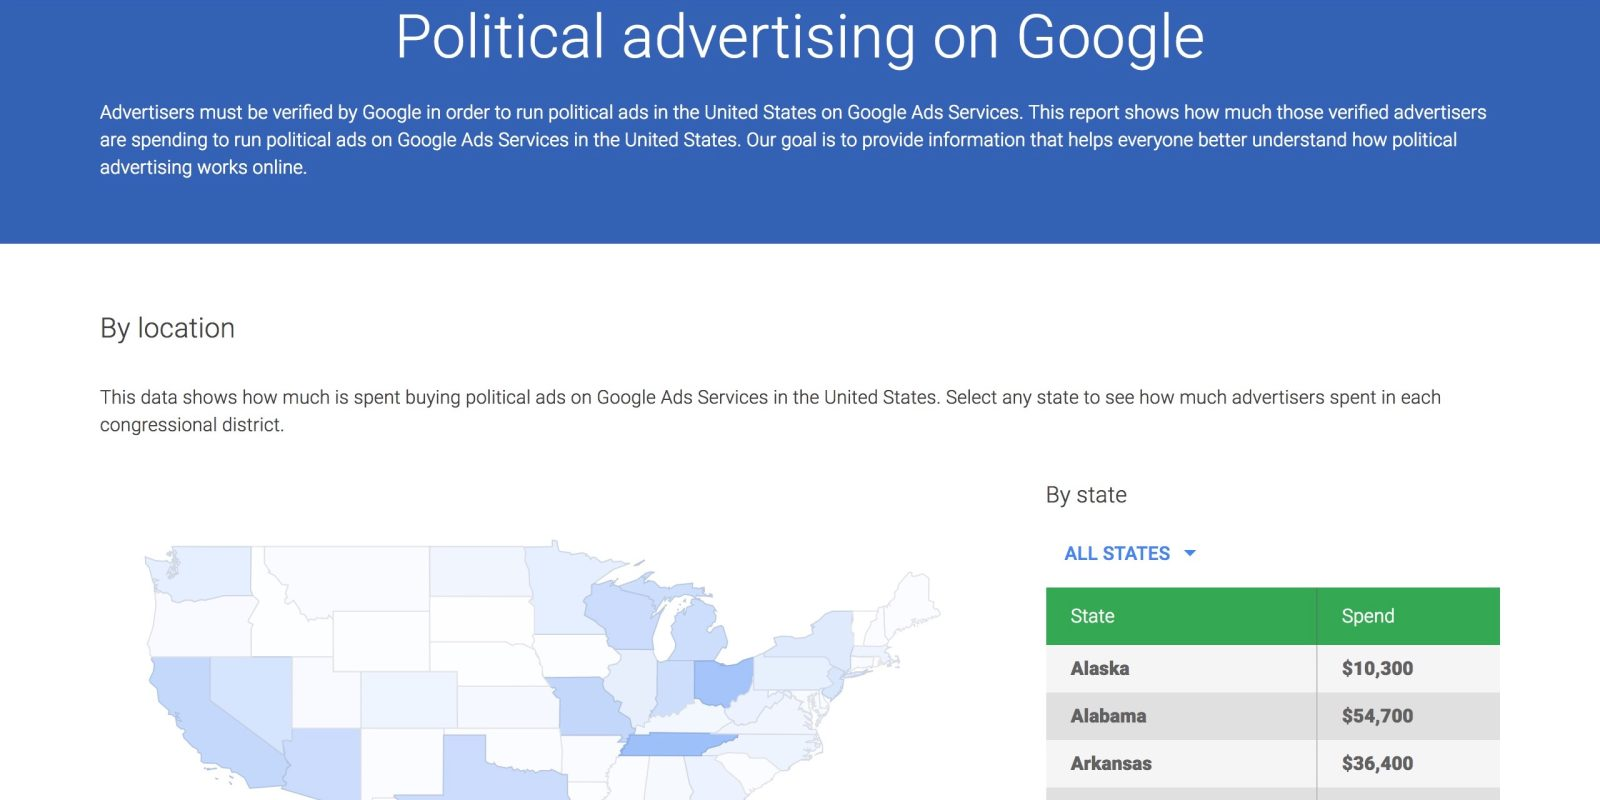 Google's Ad Library lists political advertising on Search